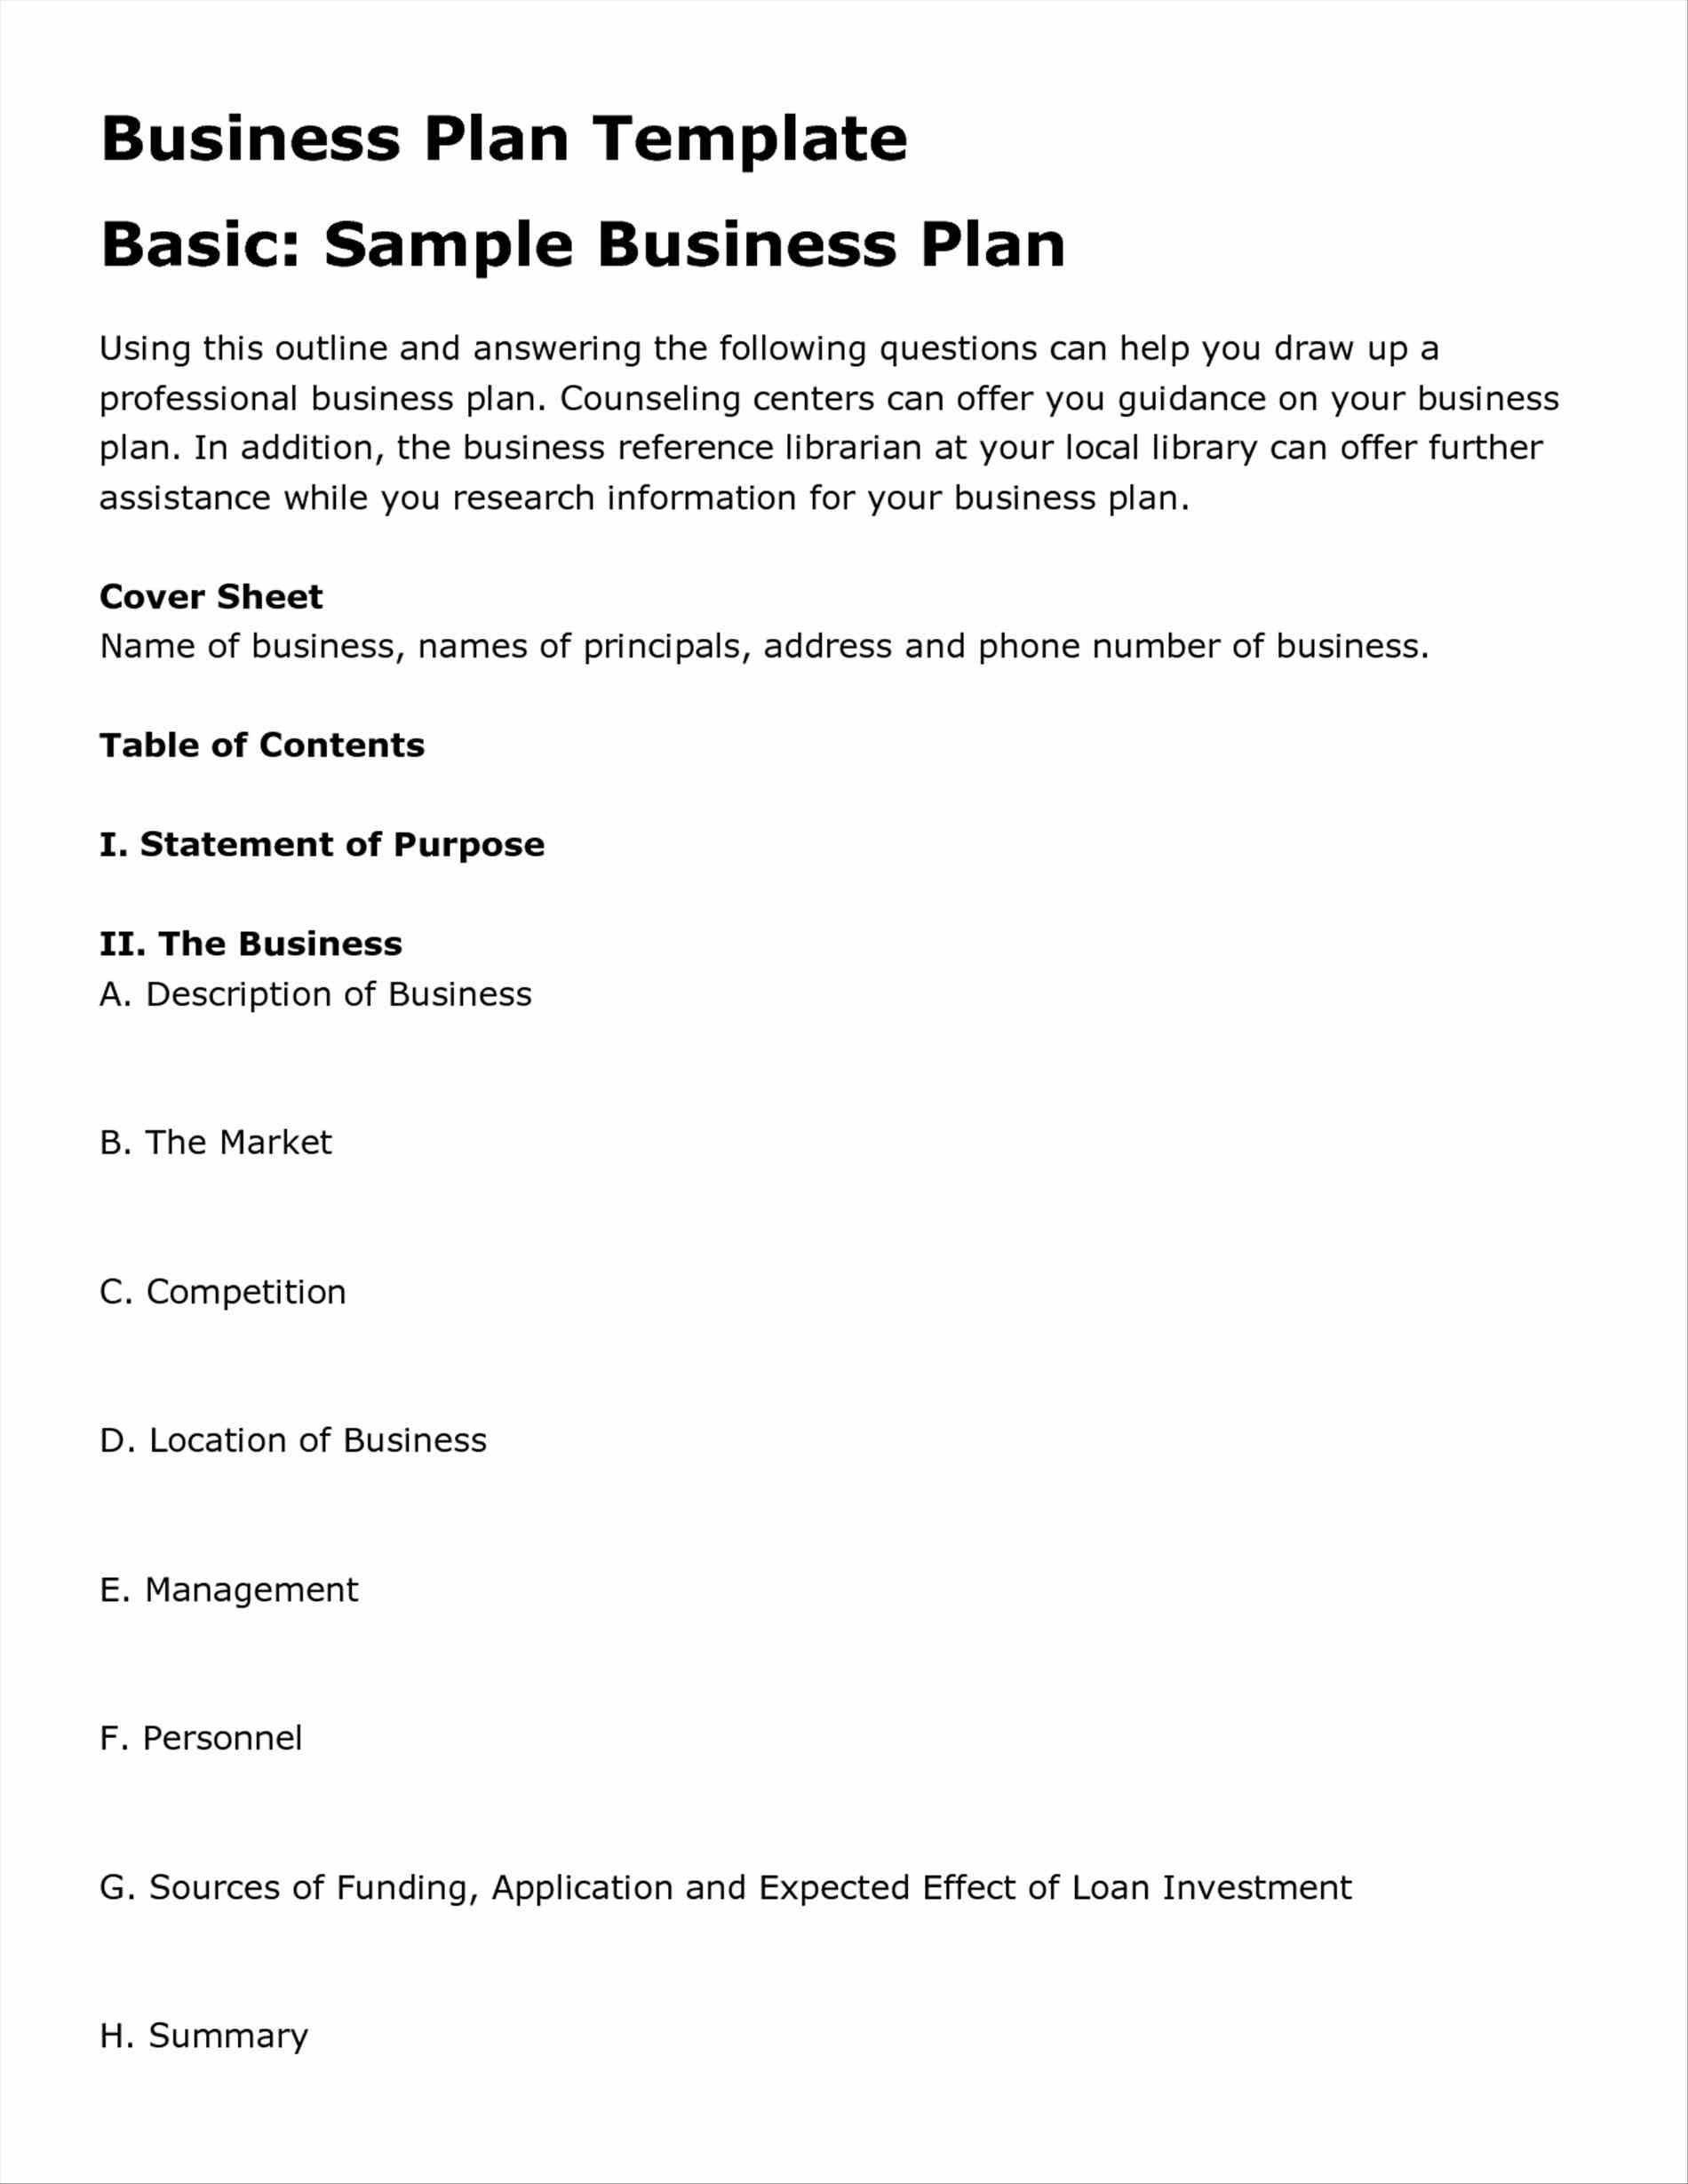 Business plan template restaurant templates in word excel pdf free business plan template restaurant templates in word excel pdf free cafe business plan template restaurant business flashek Gallery